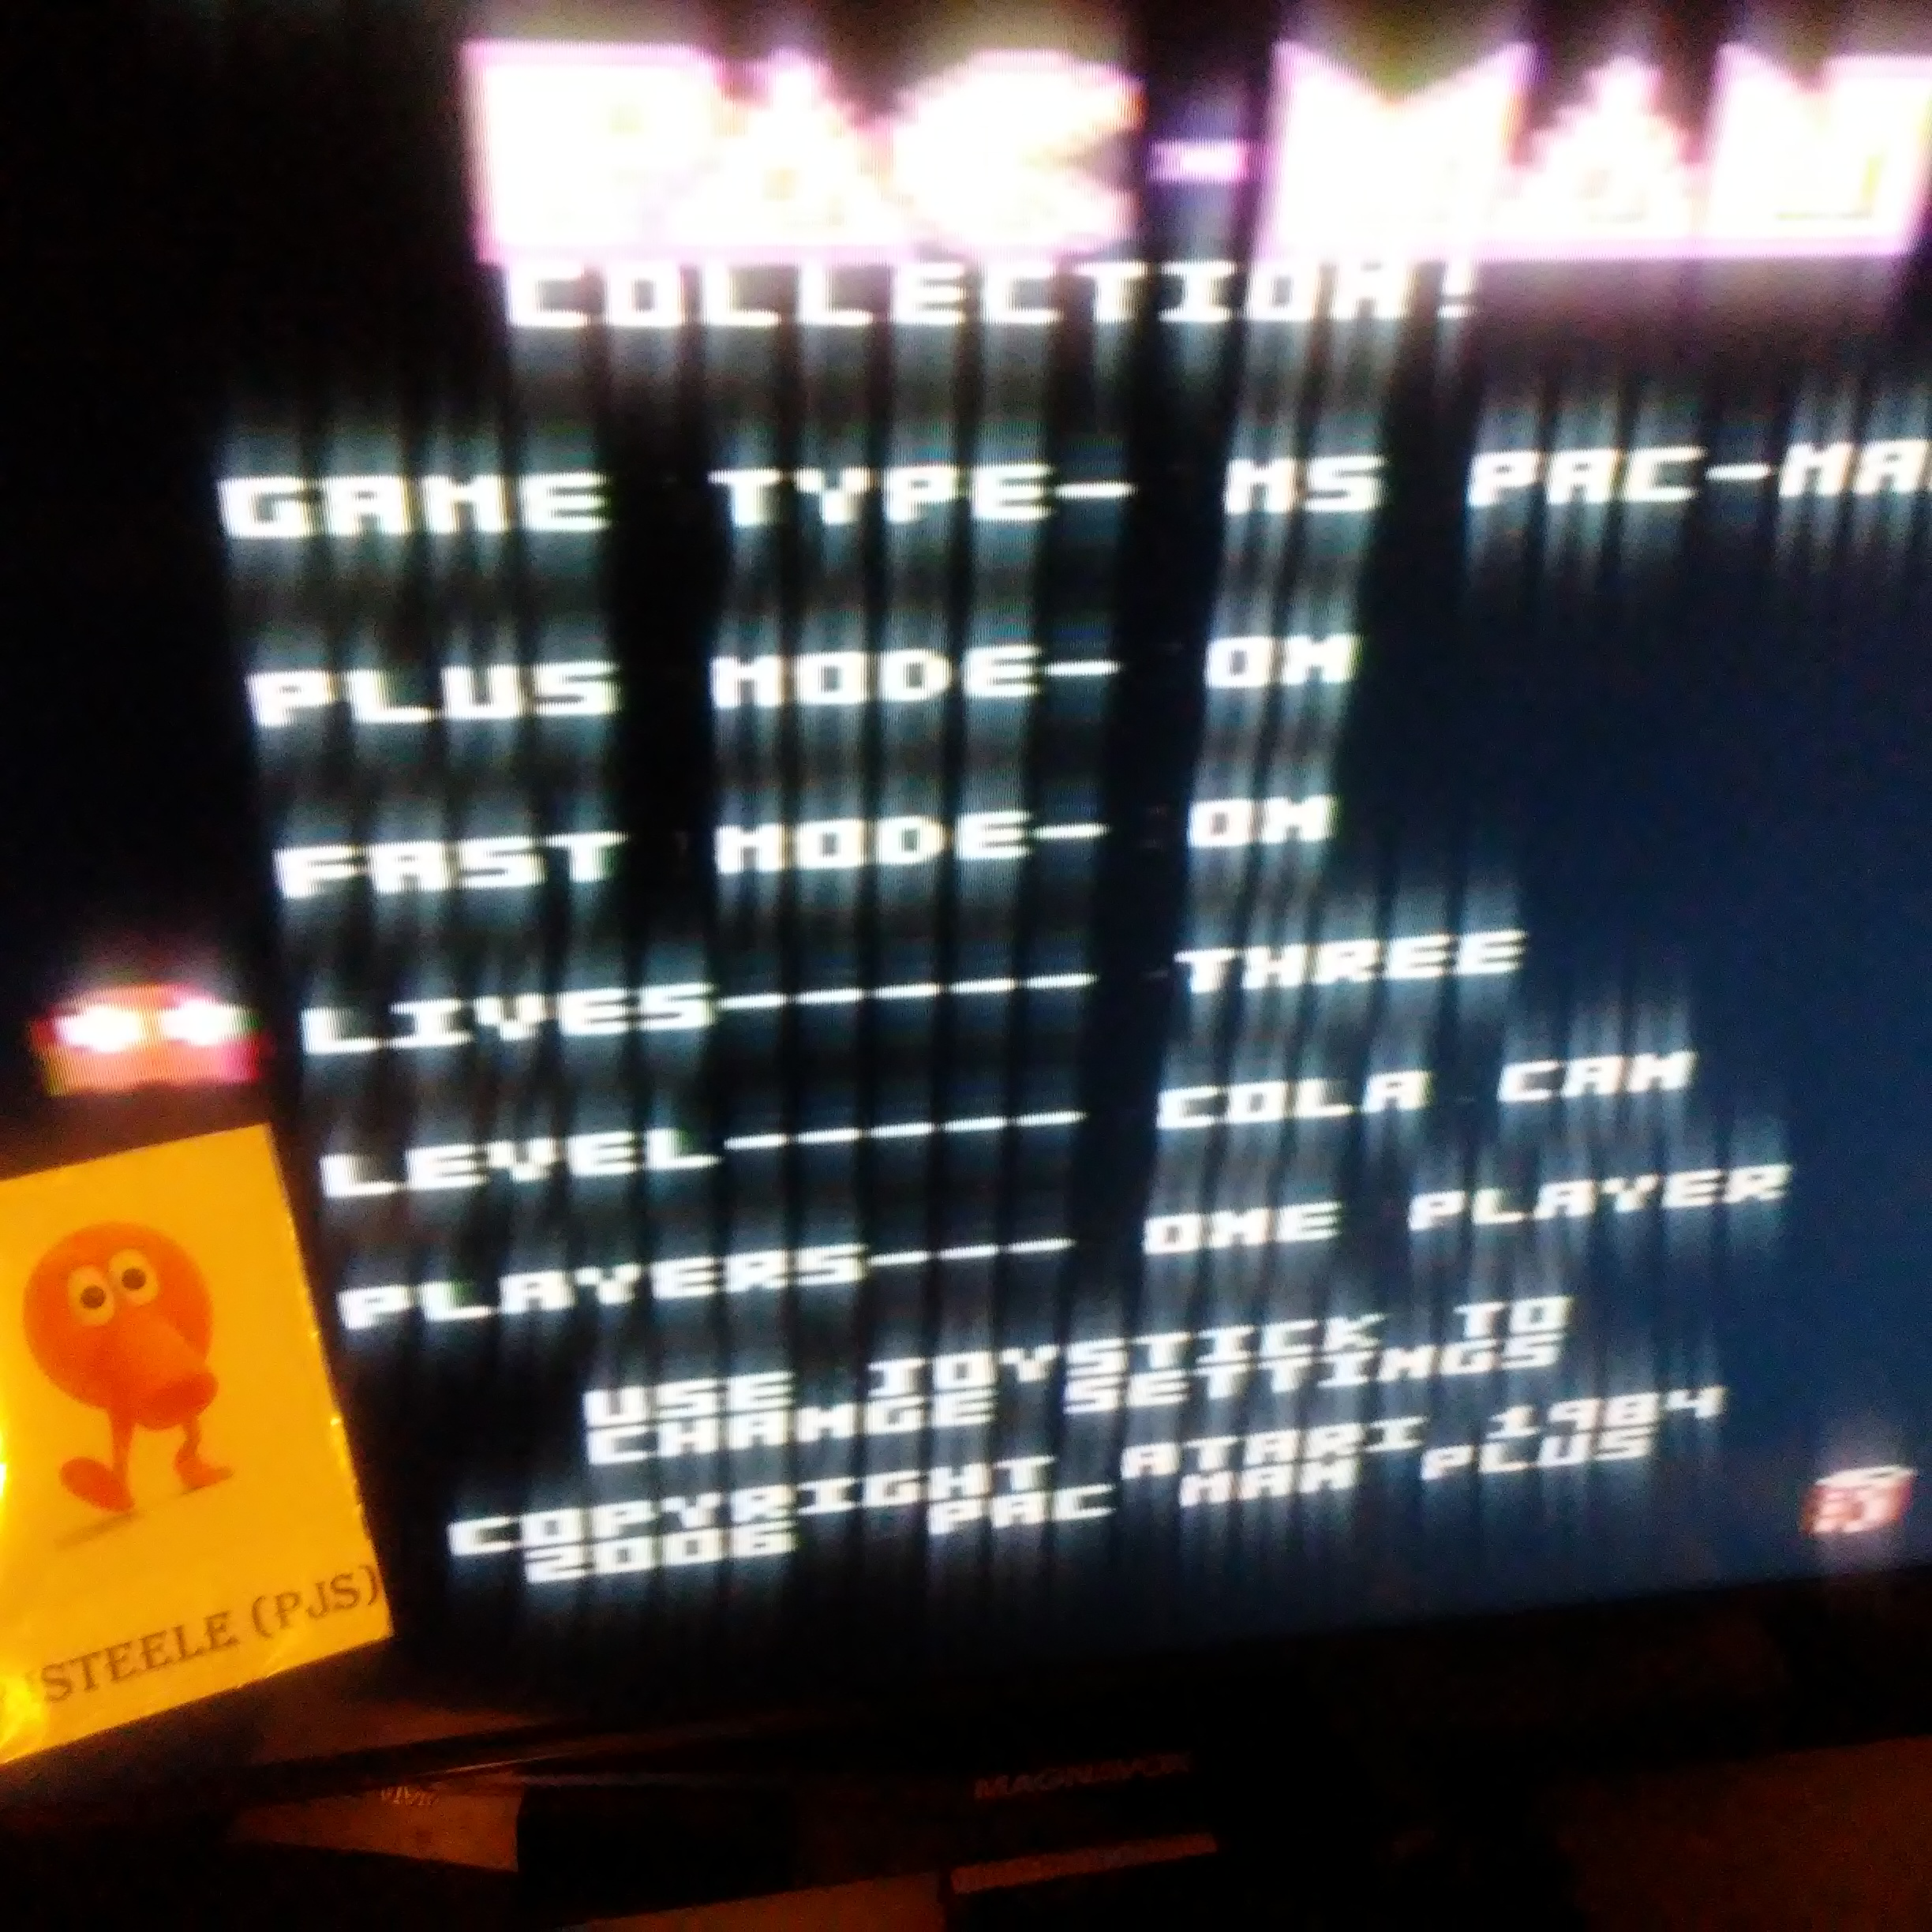 Pjsteele: Pac-Man Collection: Ms. Pac-Man [Cola/Plus On/Fast On] (Atari 7800) 36,390 points on 2018-09-04 20:11:36